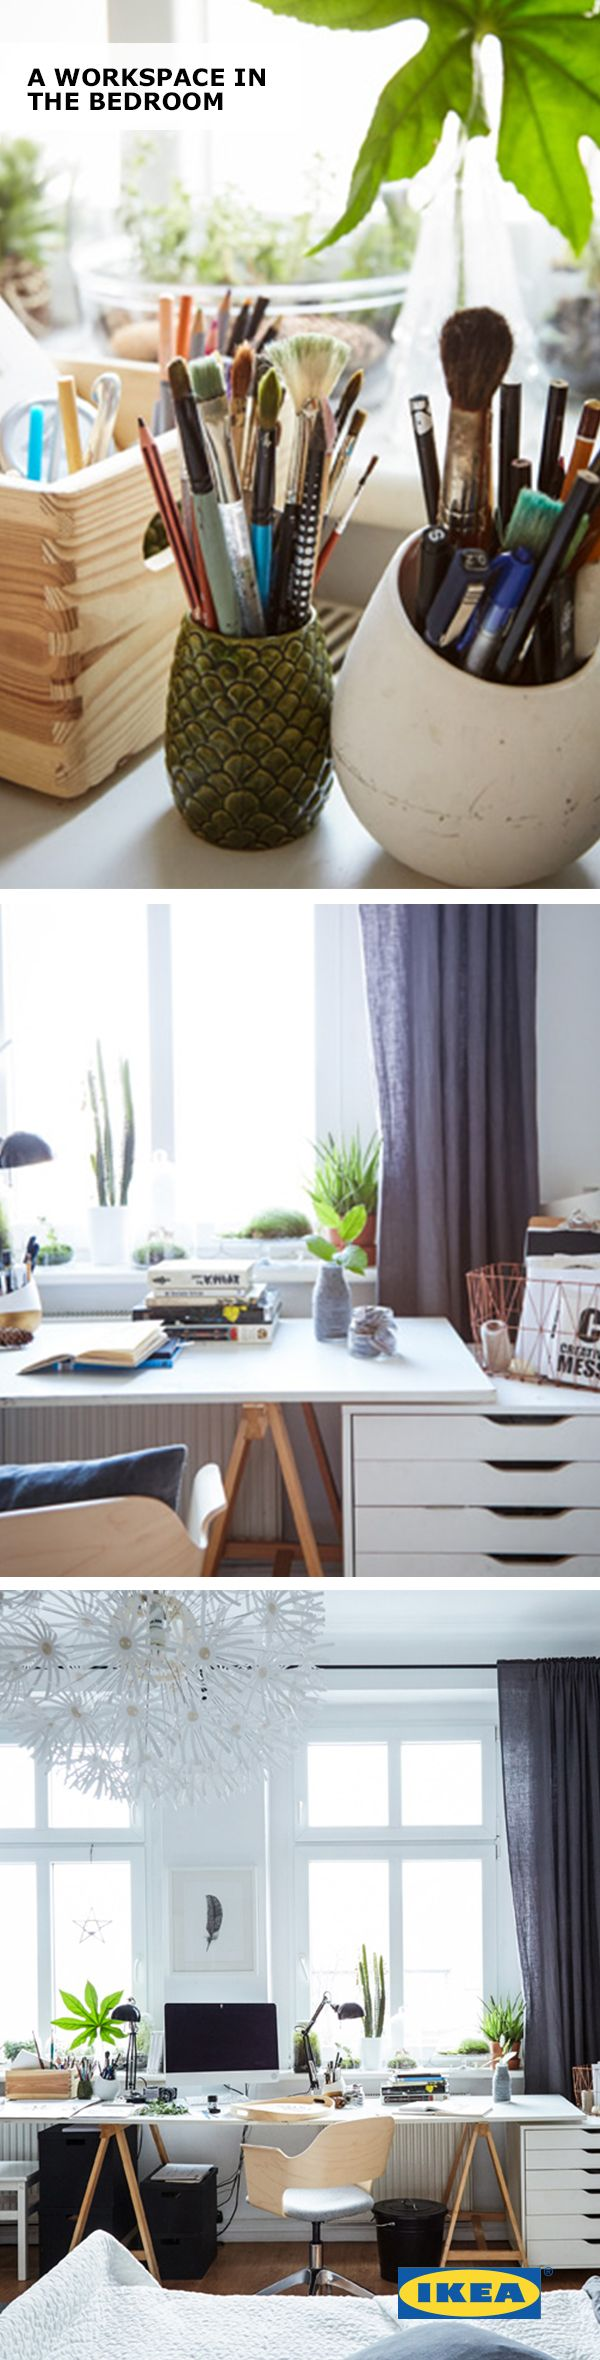 207 best Home Office images on Pinterest | Bedroom, Decorations ...